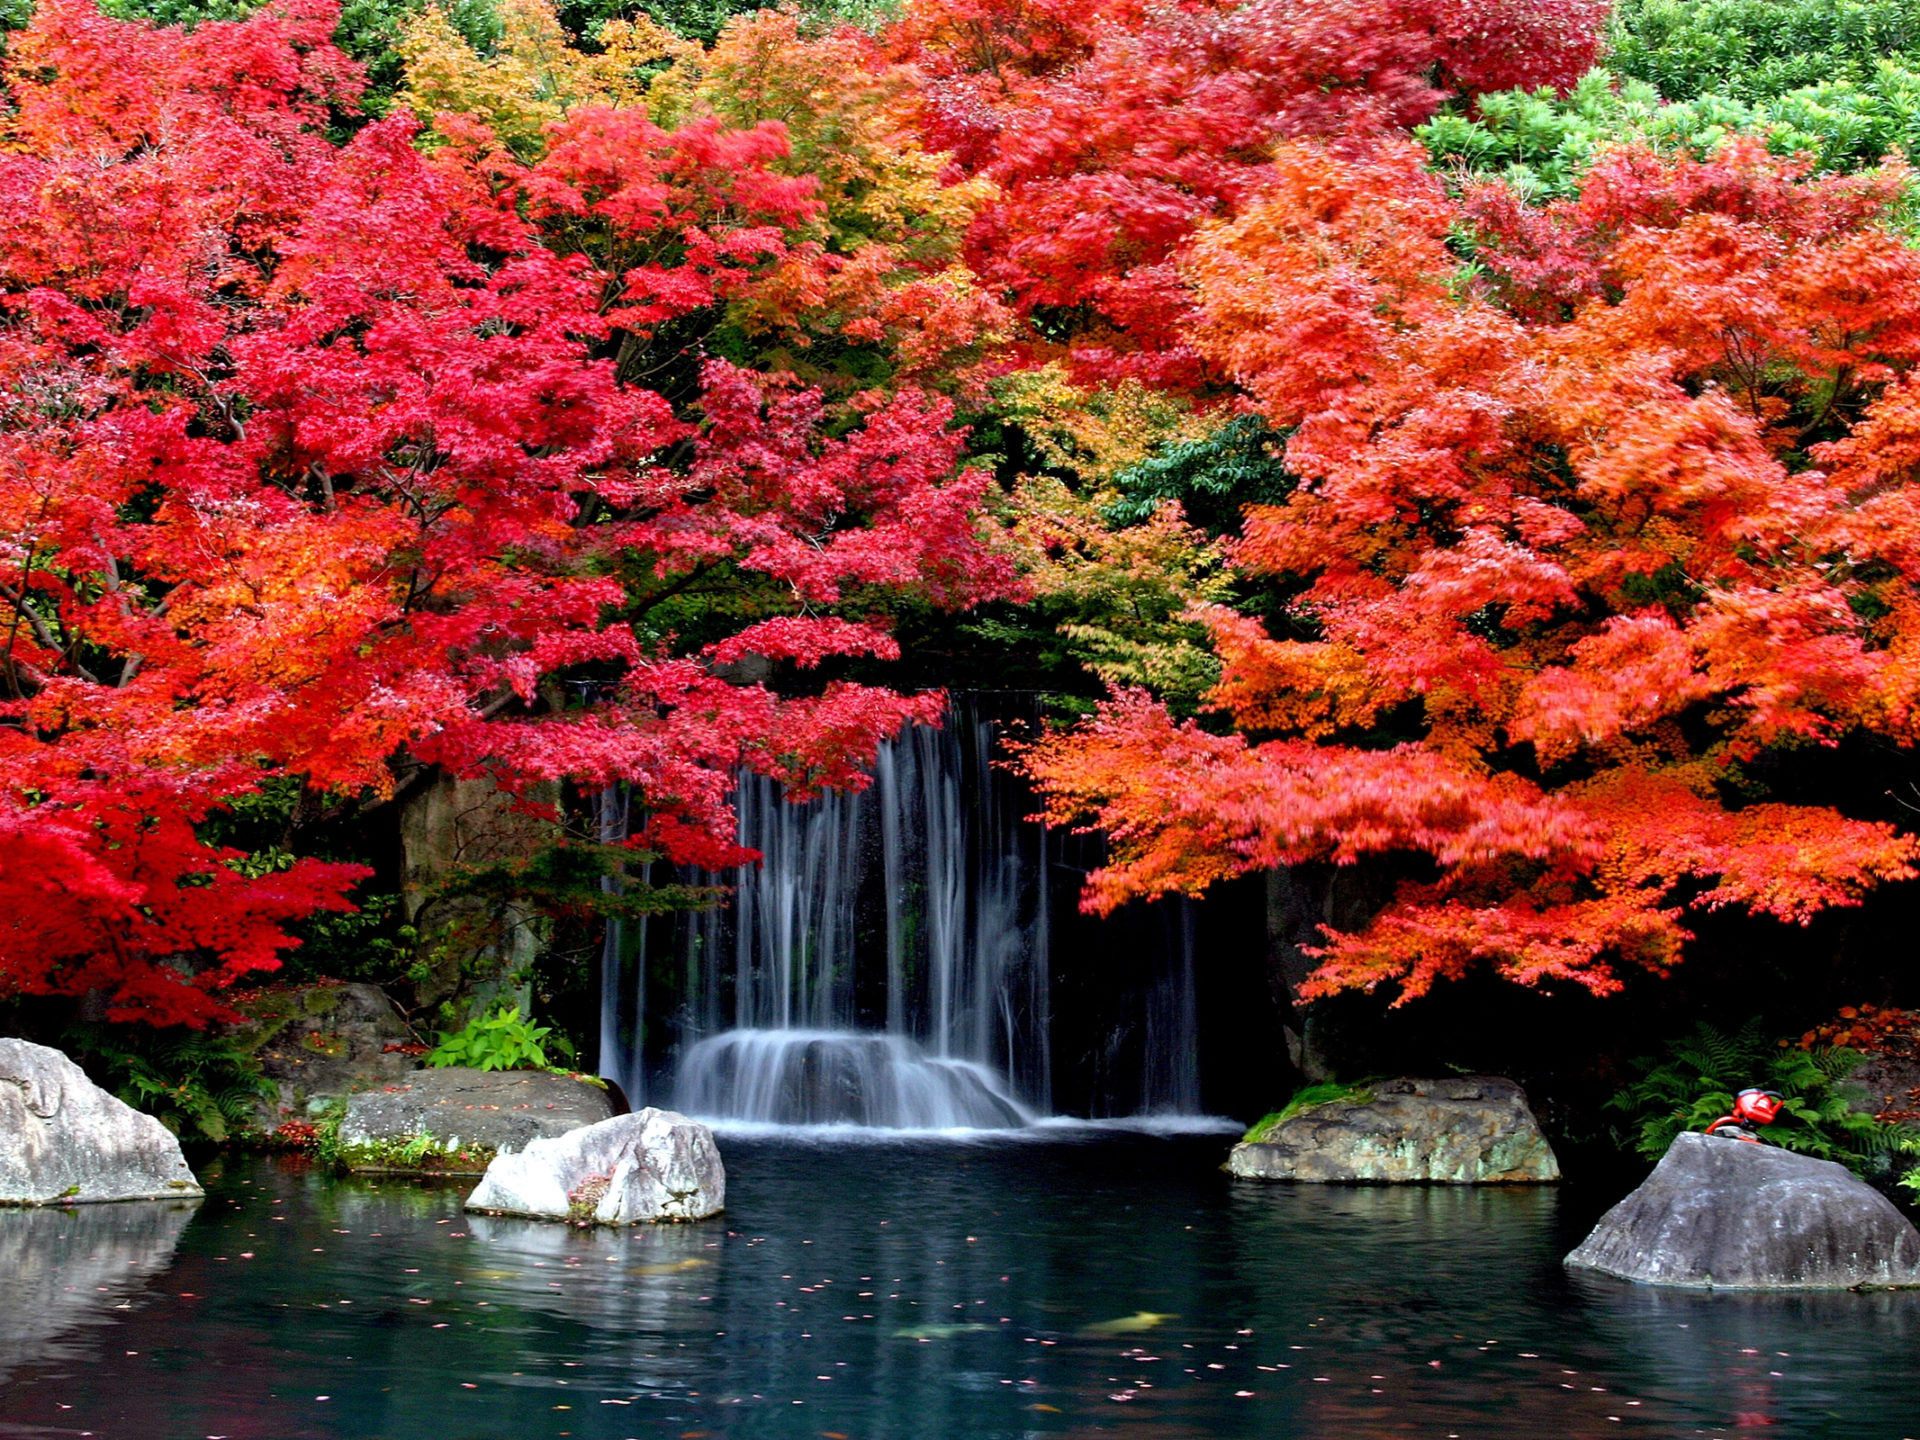 Fall Autumn Hd Wallpaper 1920x1080 Autumn Falls Desktop Background Hd Wallpapers 1629361